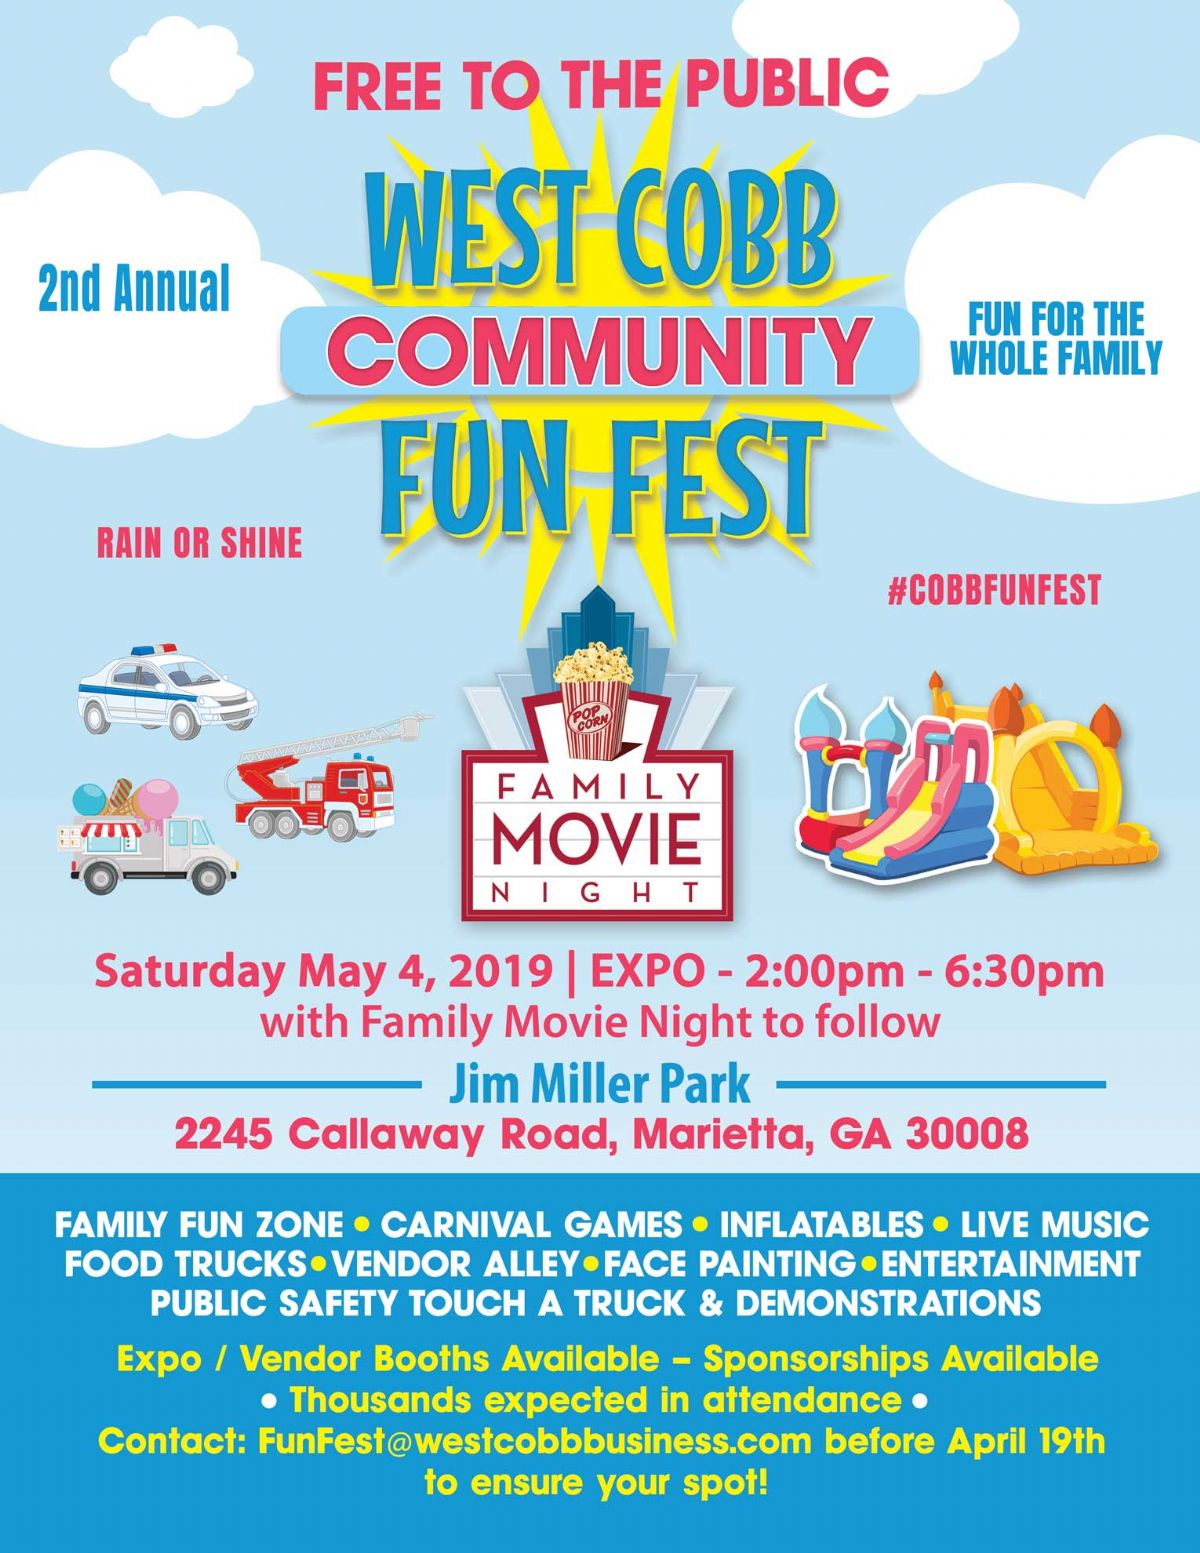 Second Annual West Cobb Community Festival